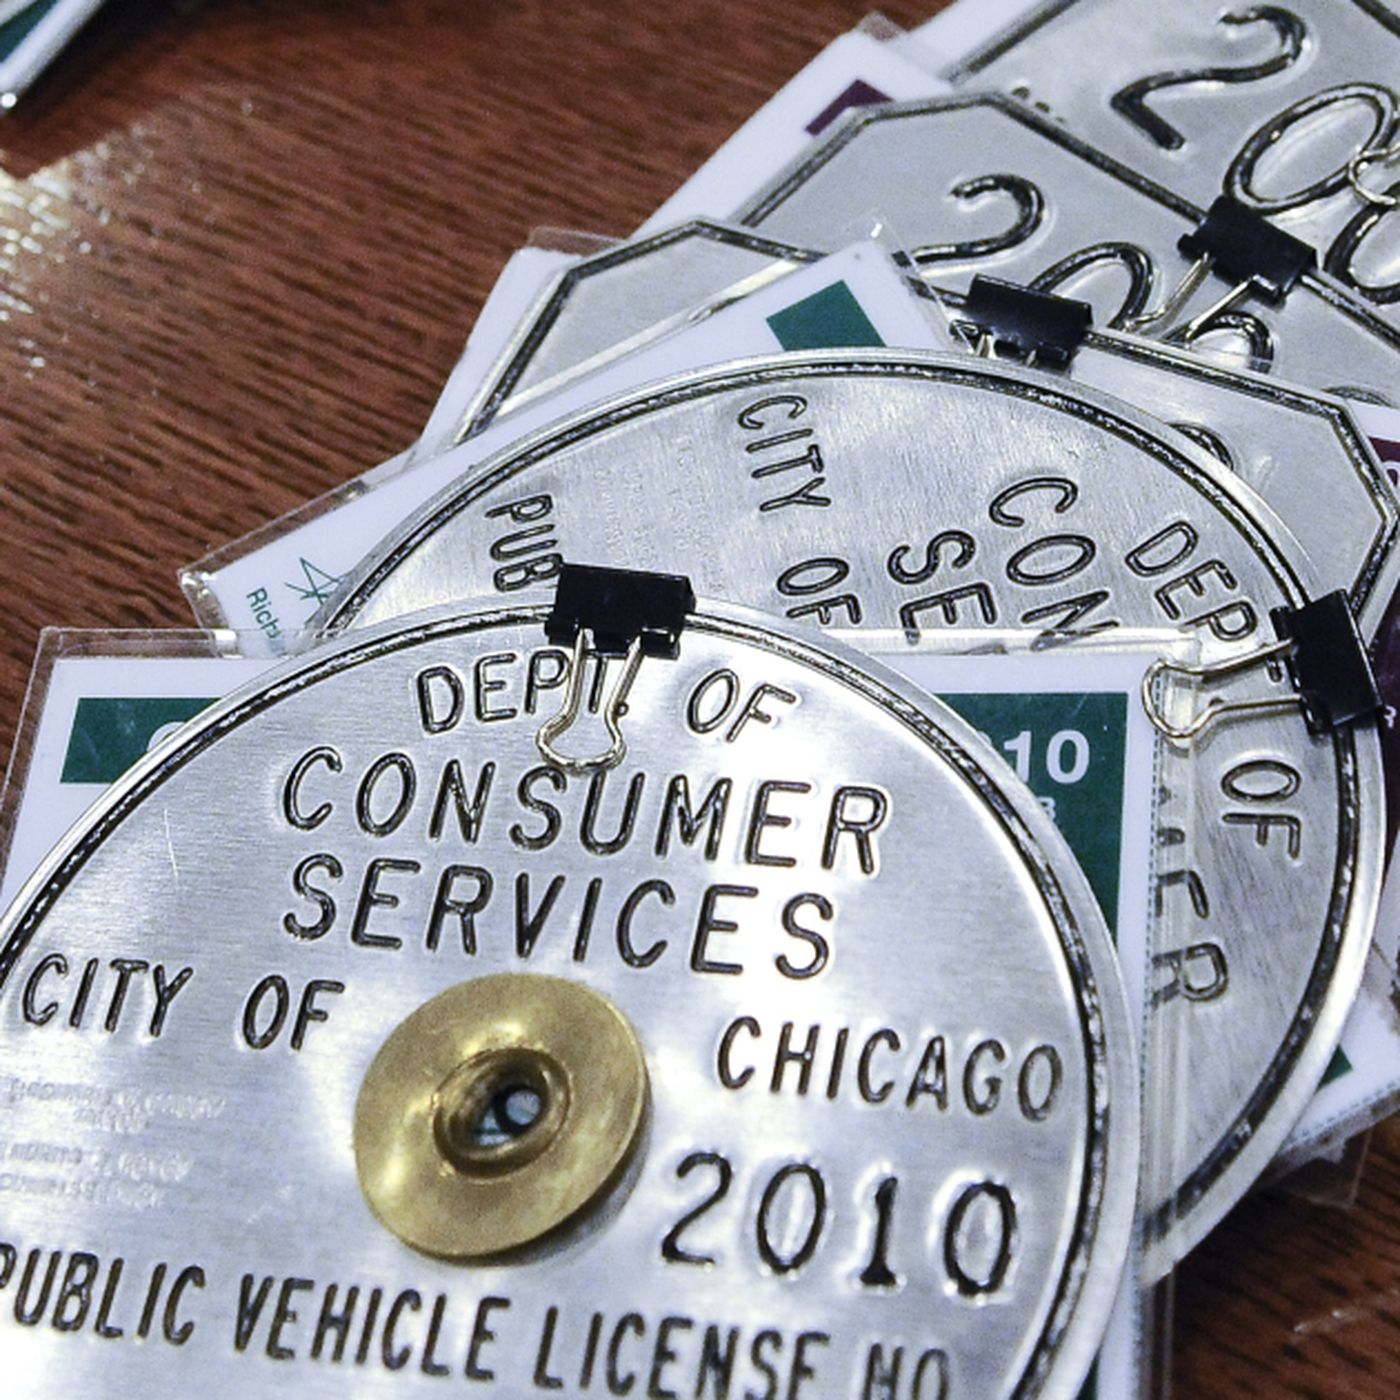 Latest cab medallion sale shows need for relief, cabbies